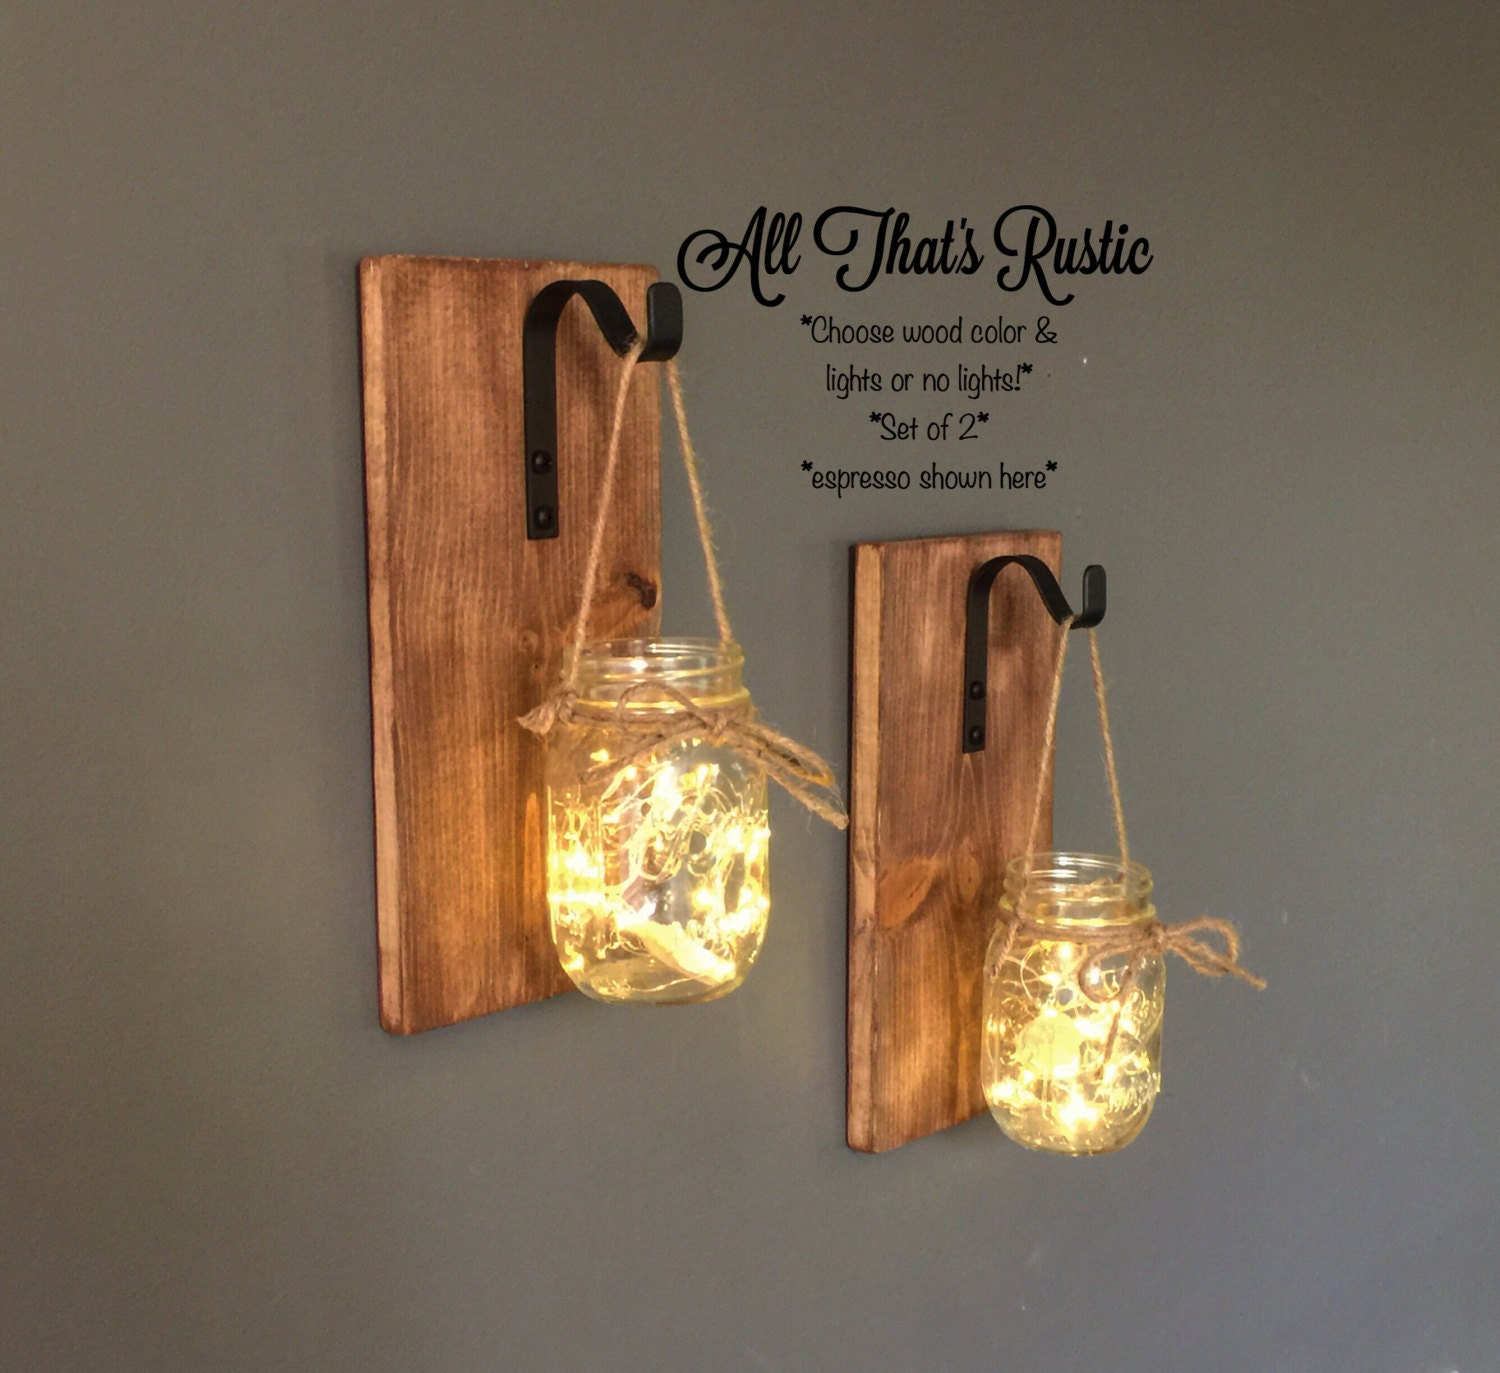 Home Decor Unique Jewelry Hand Crafted Gifts Candles In: Set Of 2 Hanging Mason Jar Sconces Mason Jar Sconce Mason